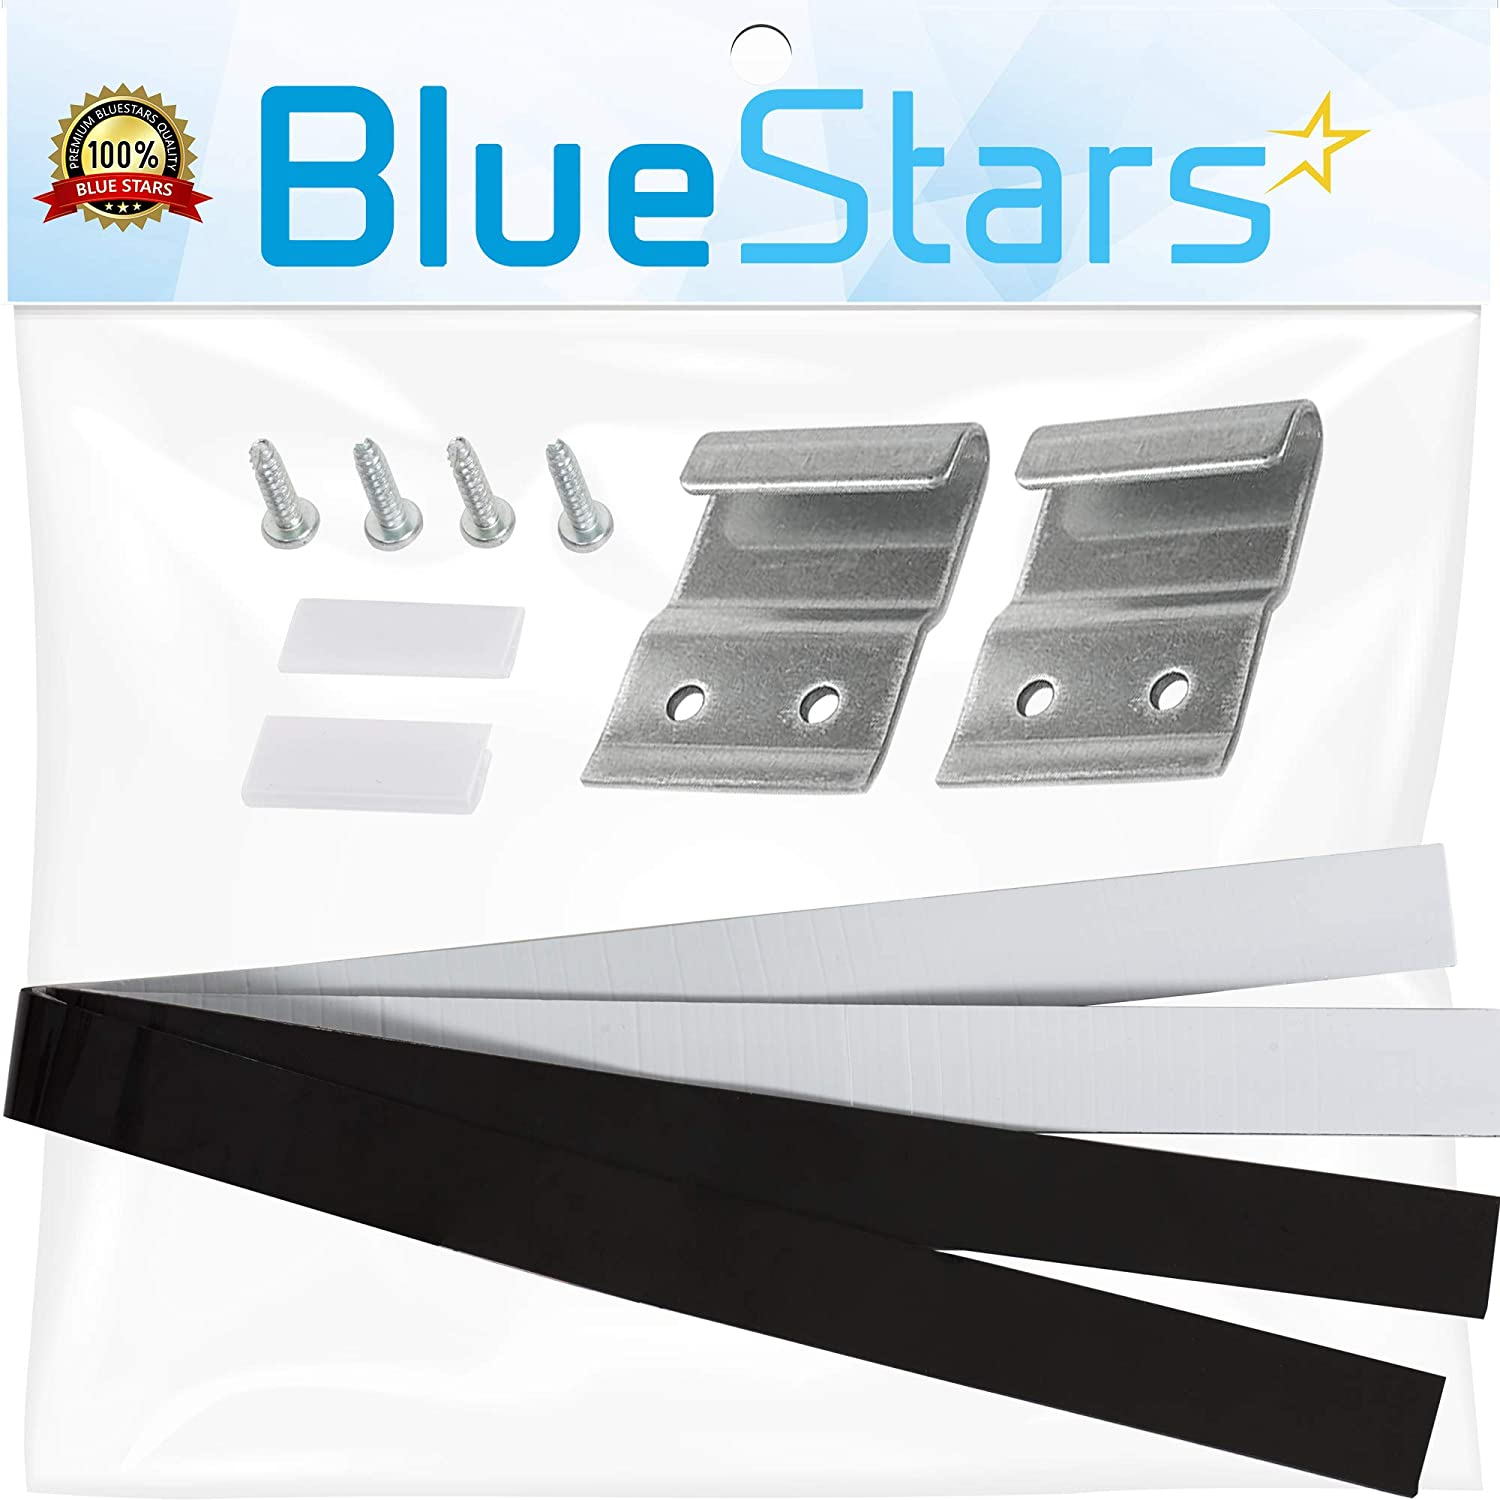 Ultra Durable 8572546 Dryers & Washers Stacking Kit Replacement Part by Blue Stars - Exact Fit for Whirlpool & Kenmore Dryers & Washers - Replaces AP3866331, 8572546